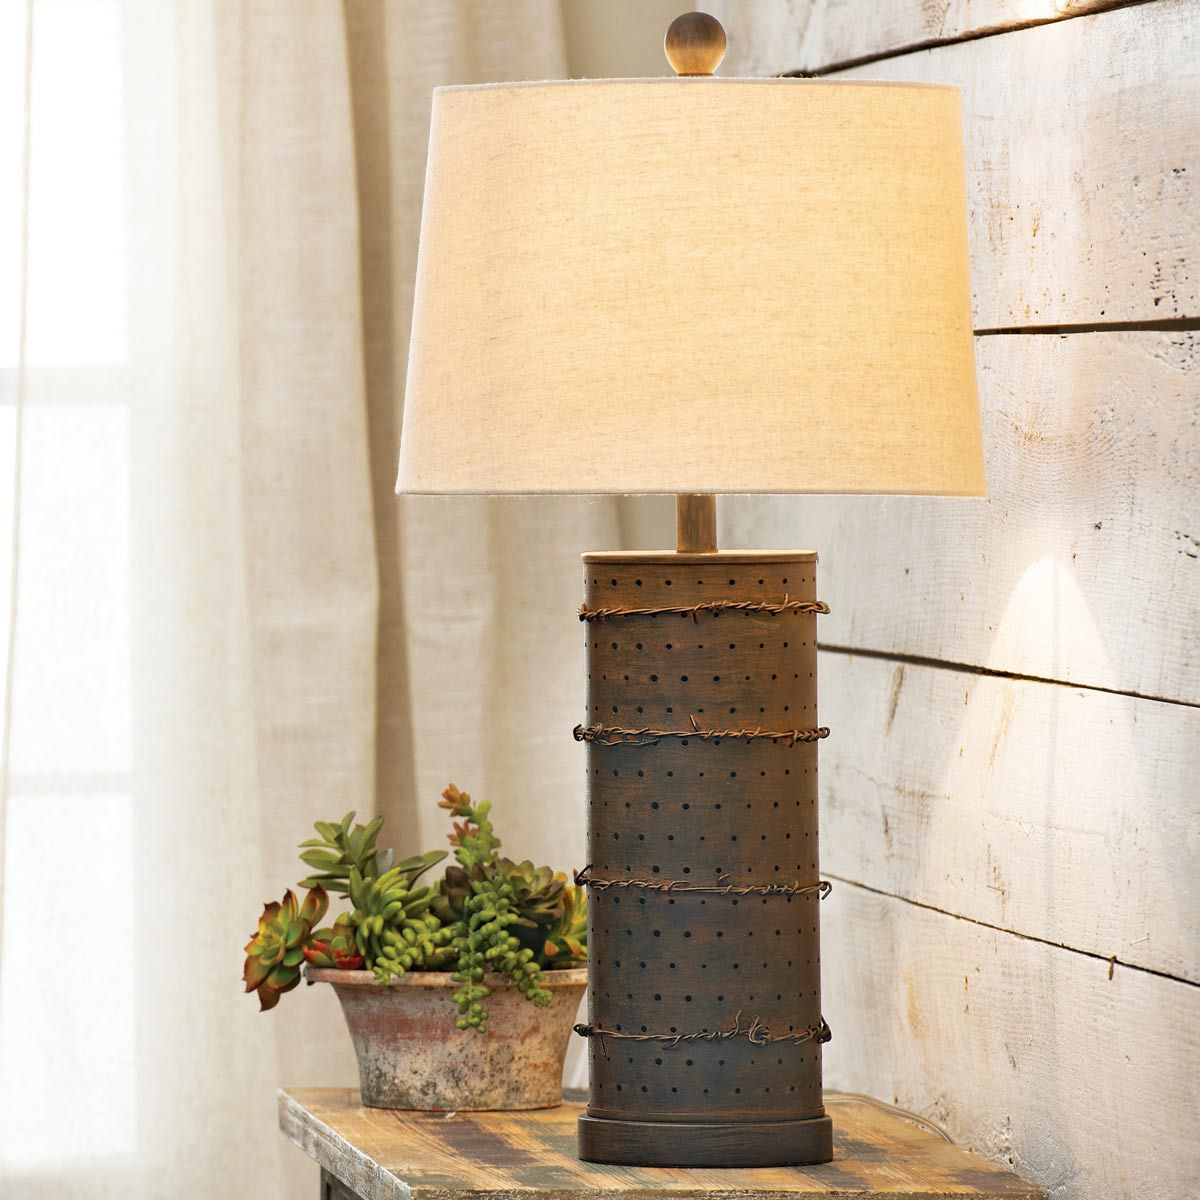 Rusted Barbed Wire Table Lamp with Nightlight